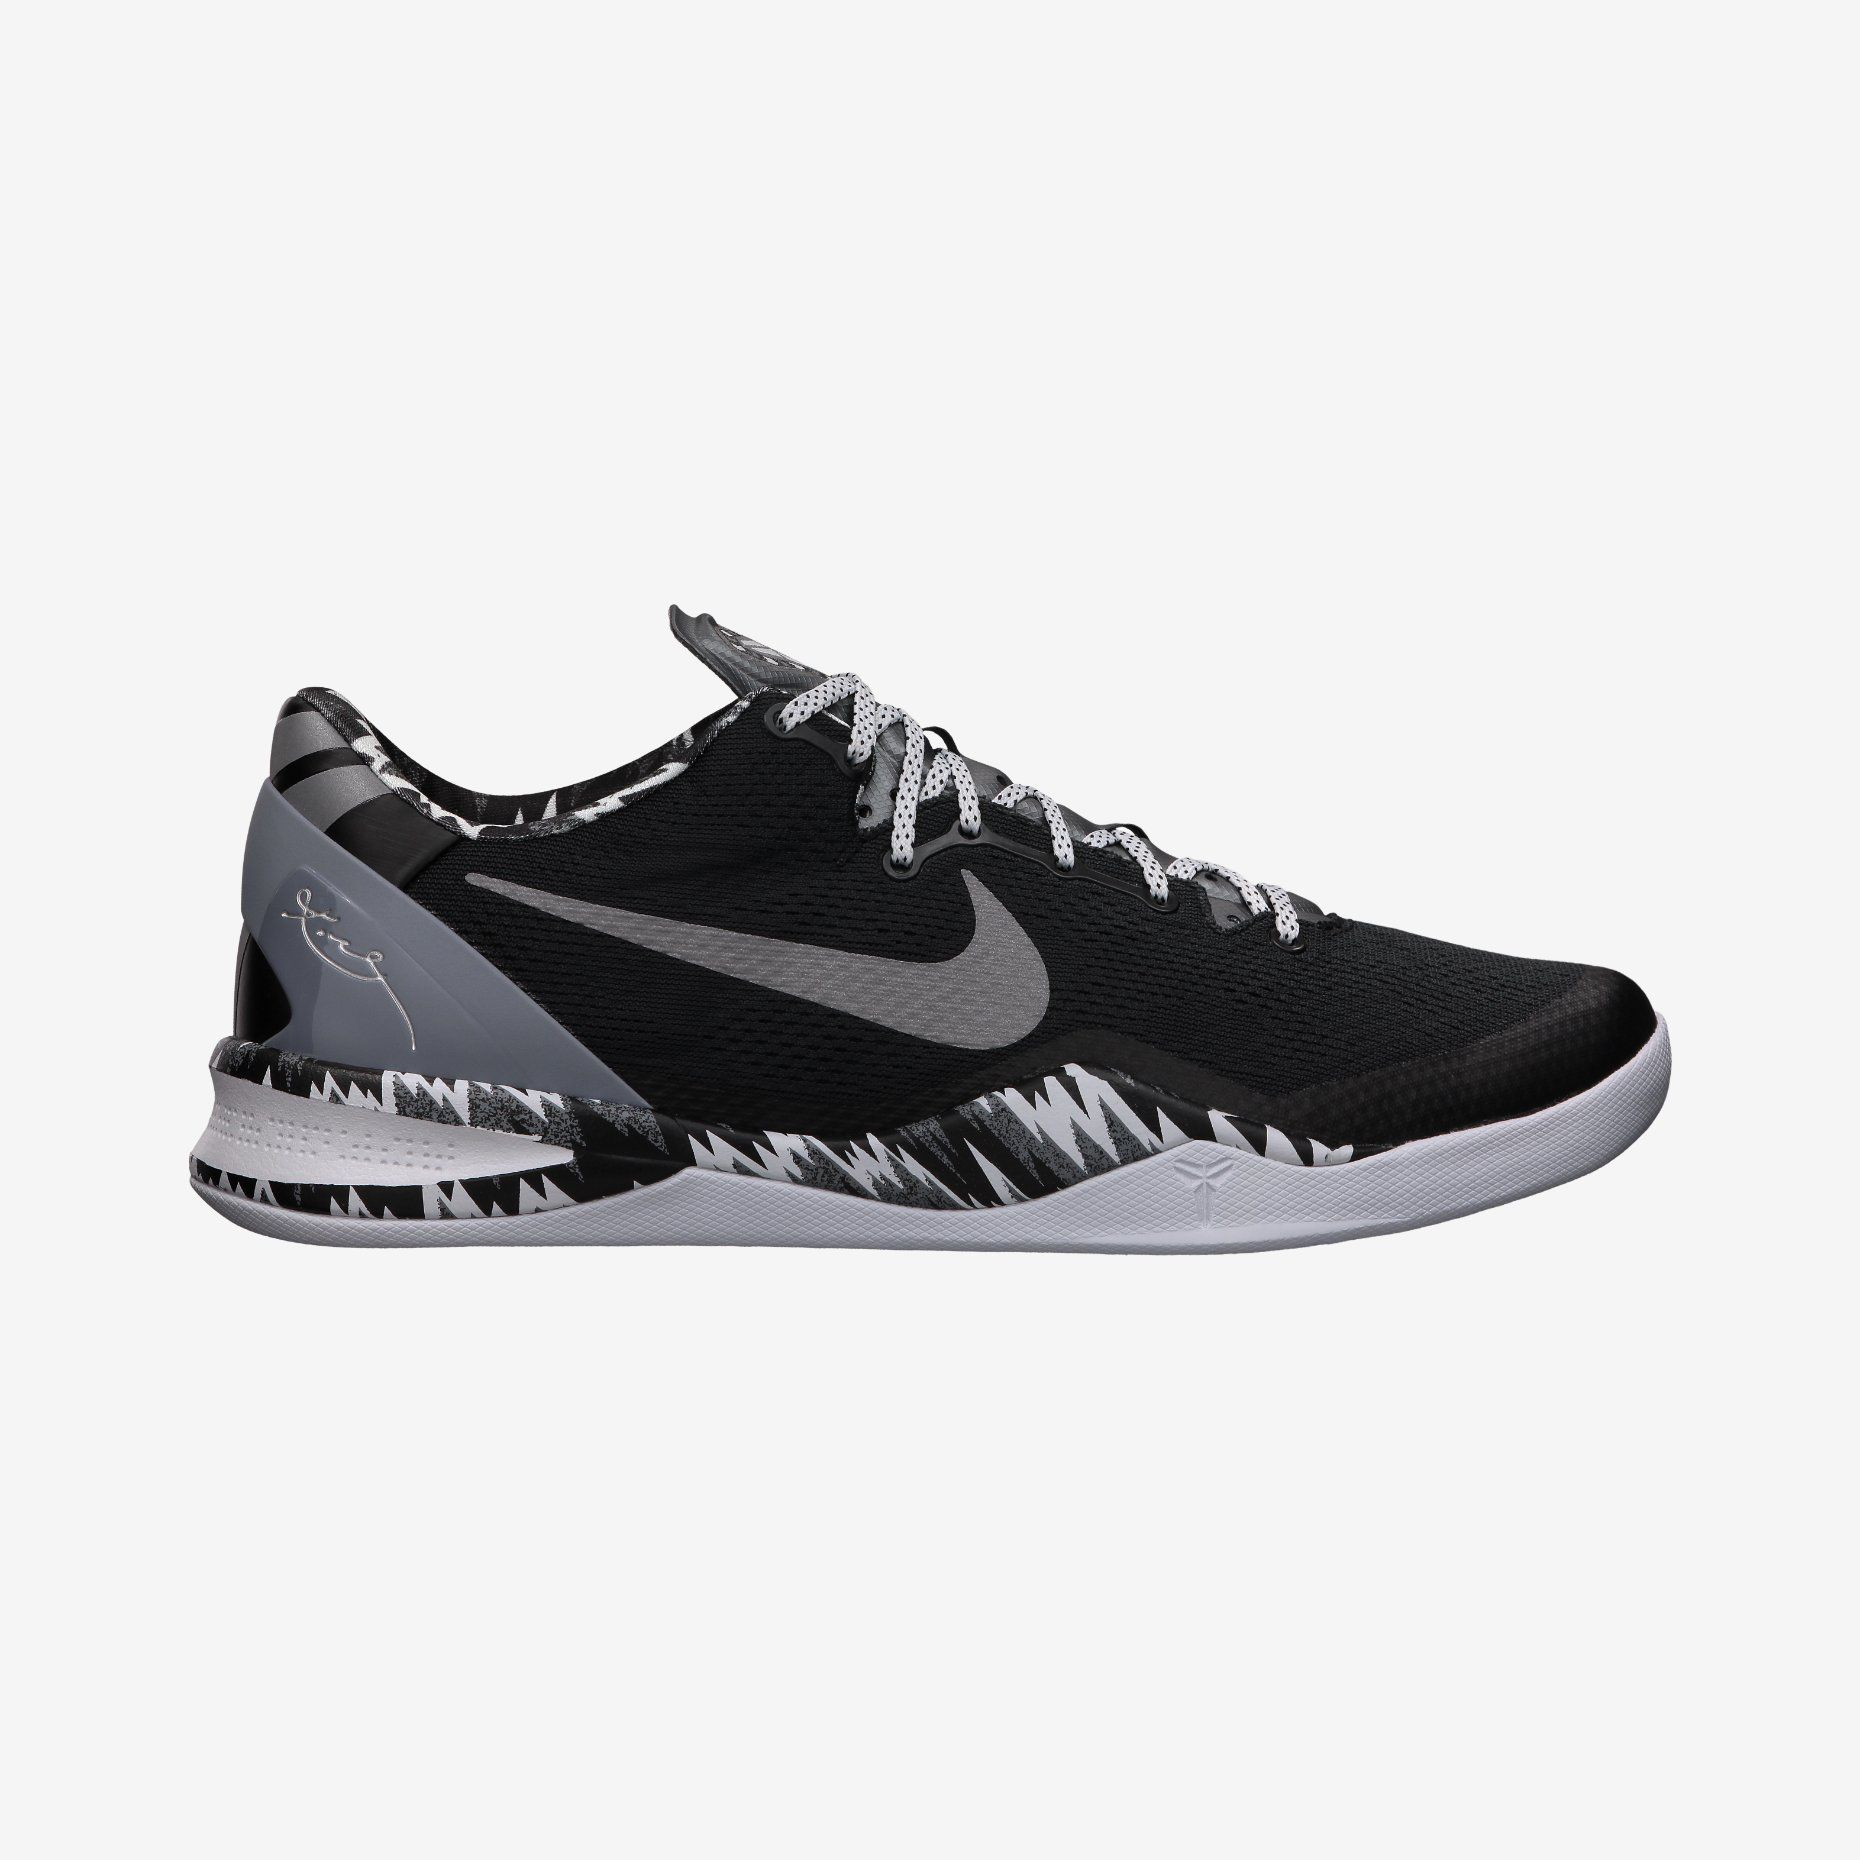 Nike Store. Kobe 8 System Men's Basketball Shoe